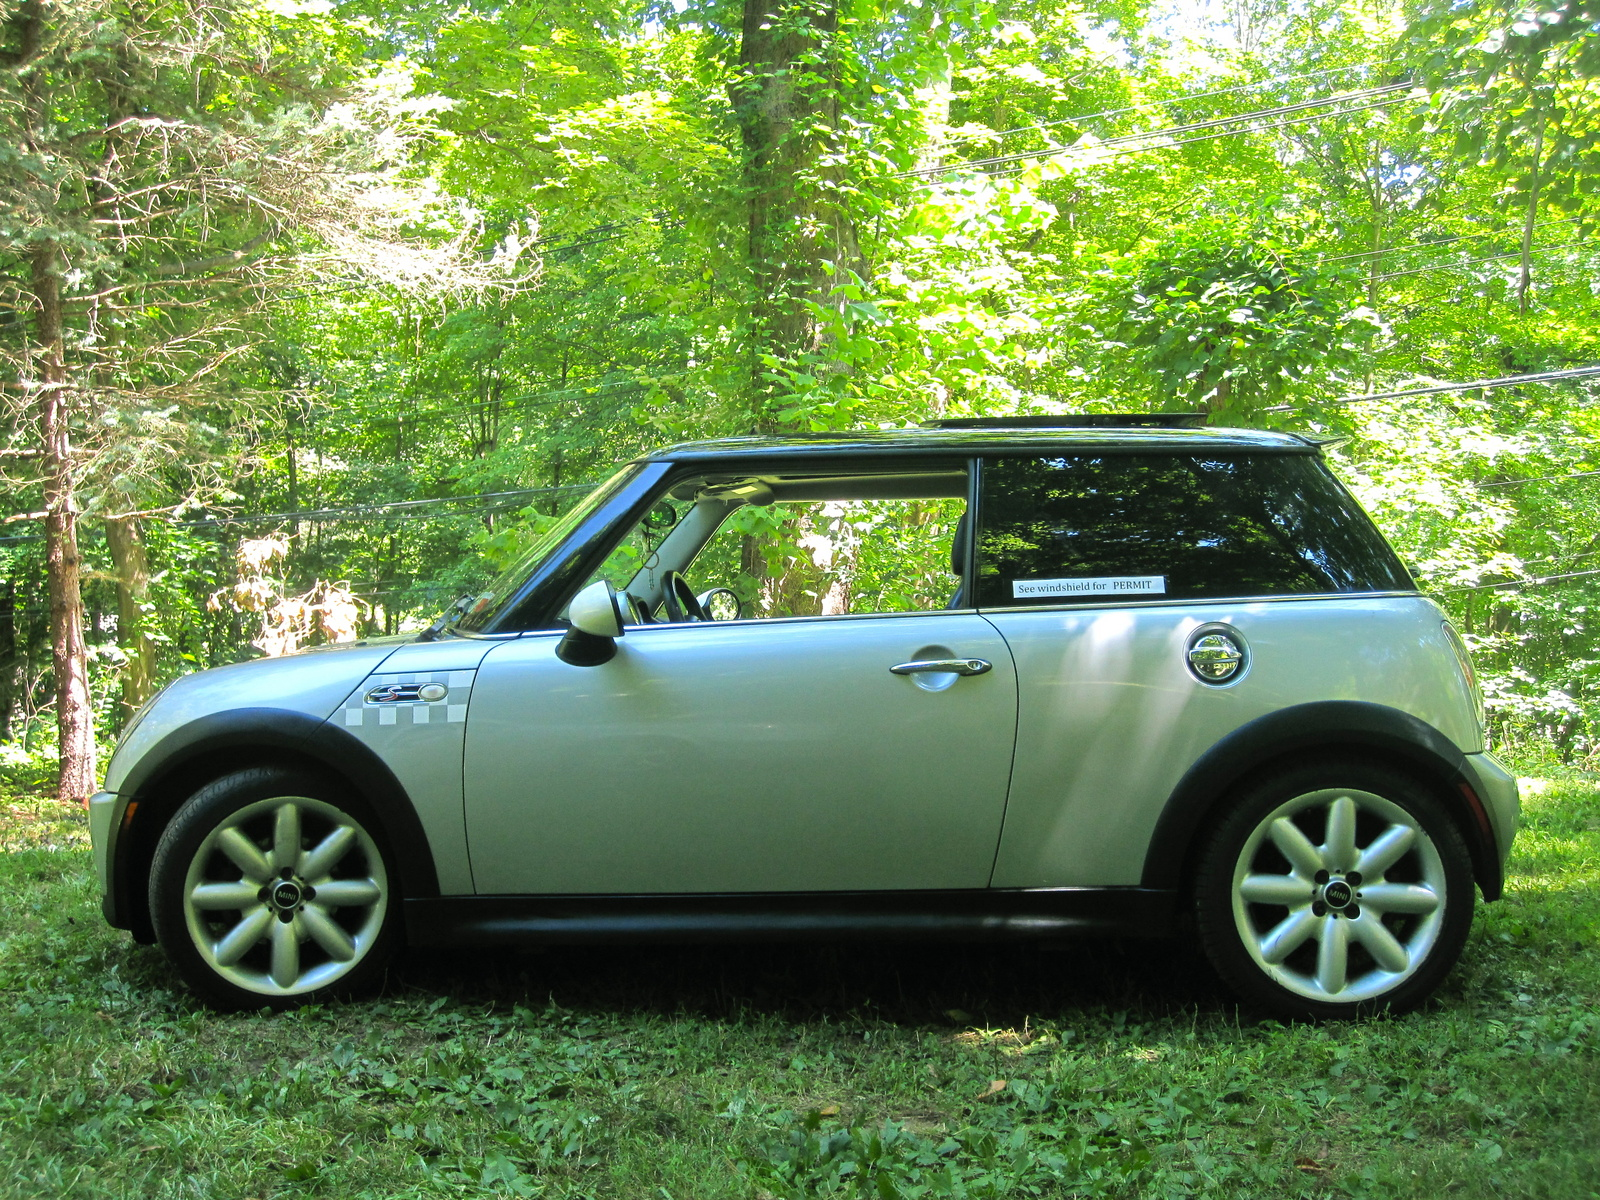 2002 mini cooper reliability car reviews from industry experts auto123 base mini cooper. Black Bedroom Furniture Sets. Home Design Ideas